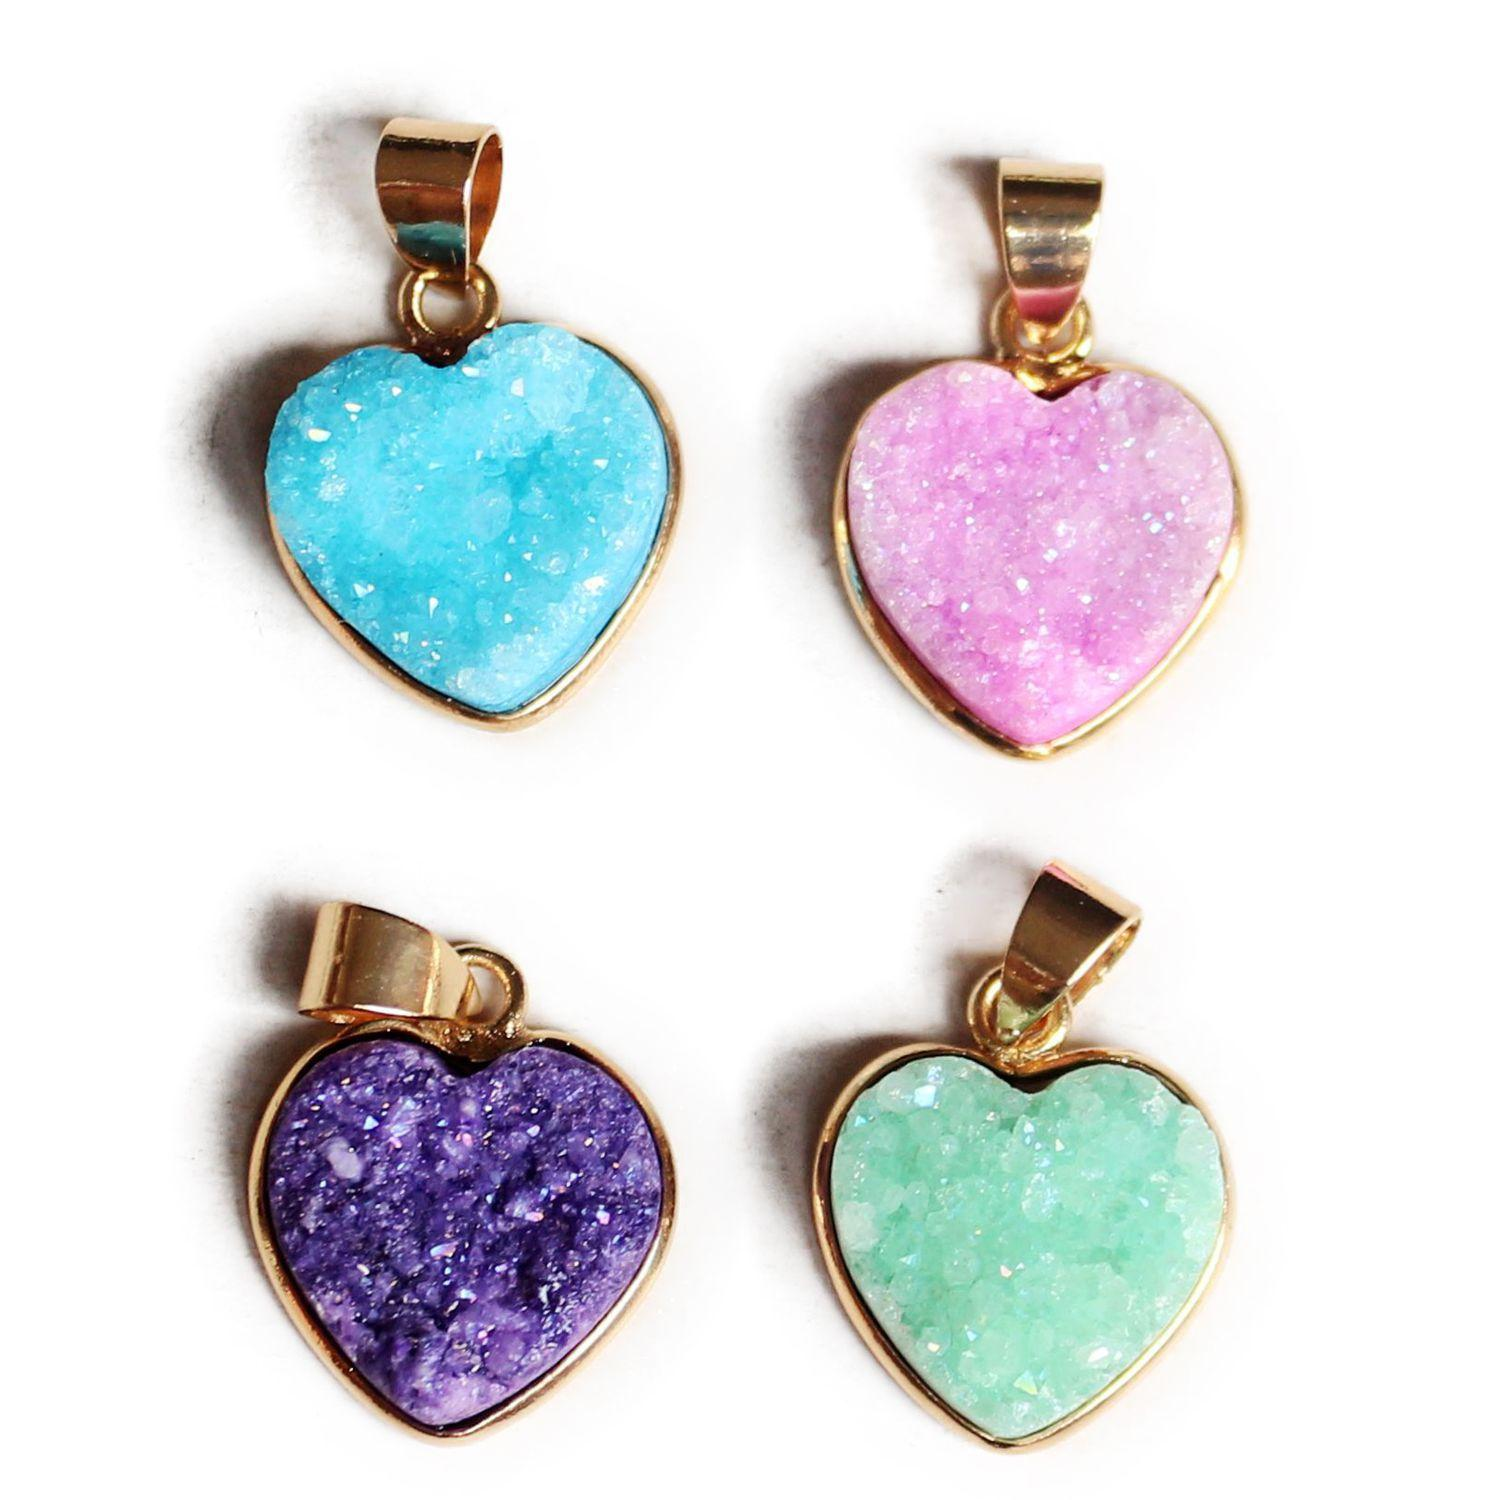 New Heart Pendant Natural Crystal Gemstone Pendant for Necklace Choker Fashion Jewelry Love Gift Free Shipping